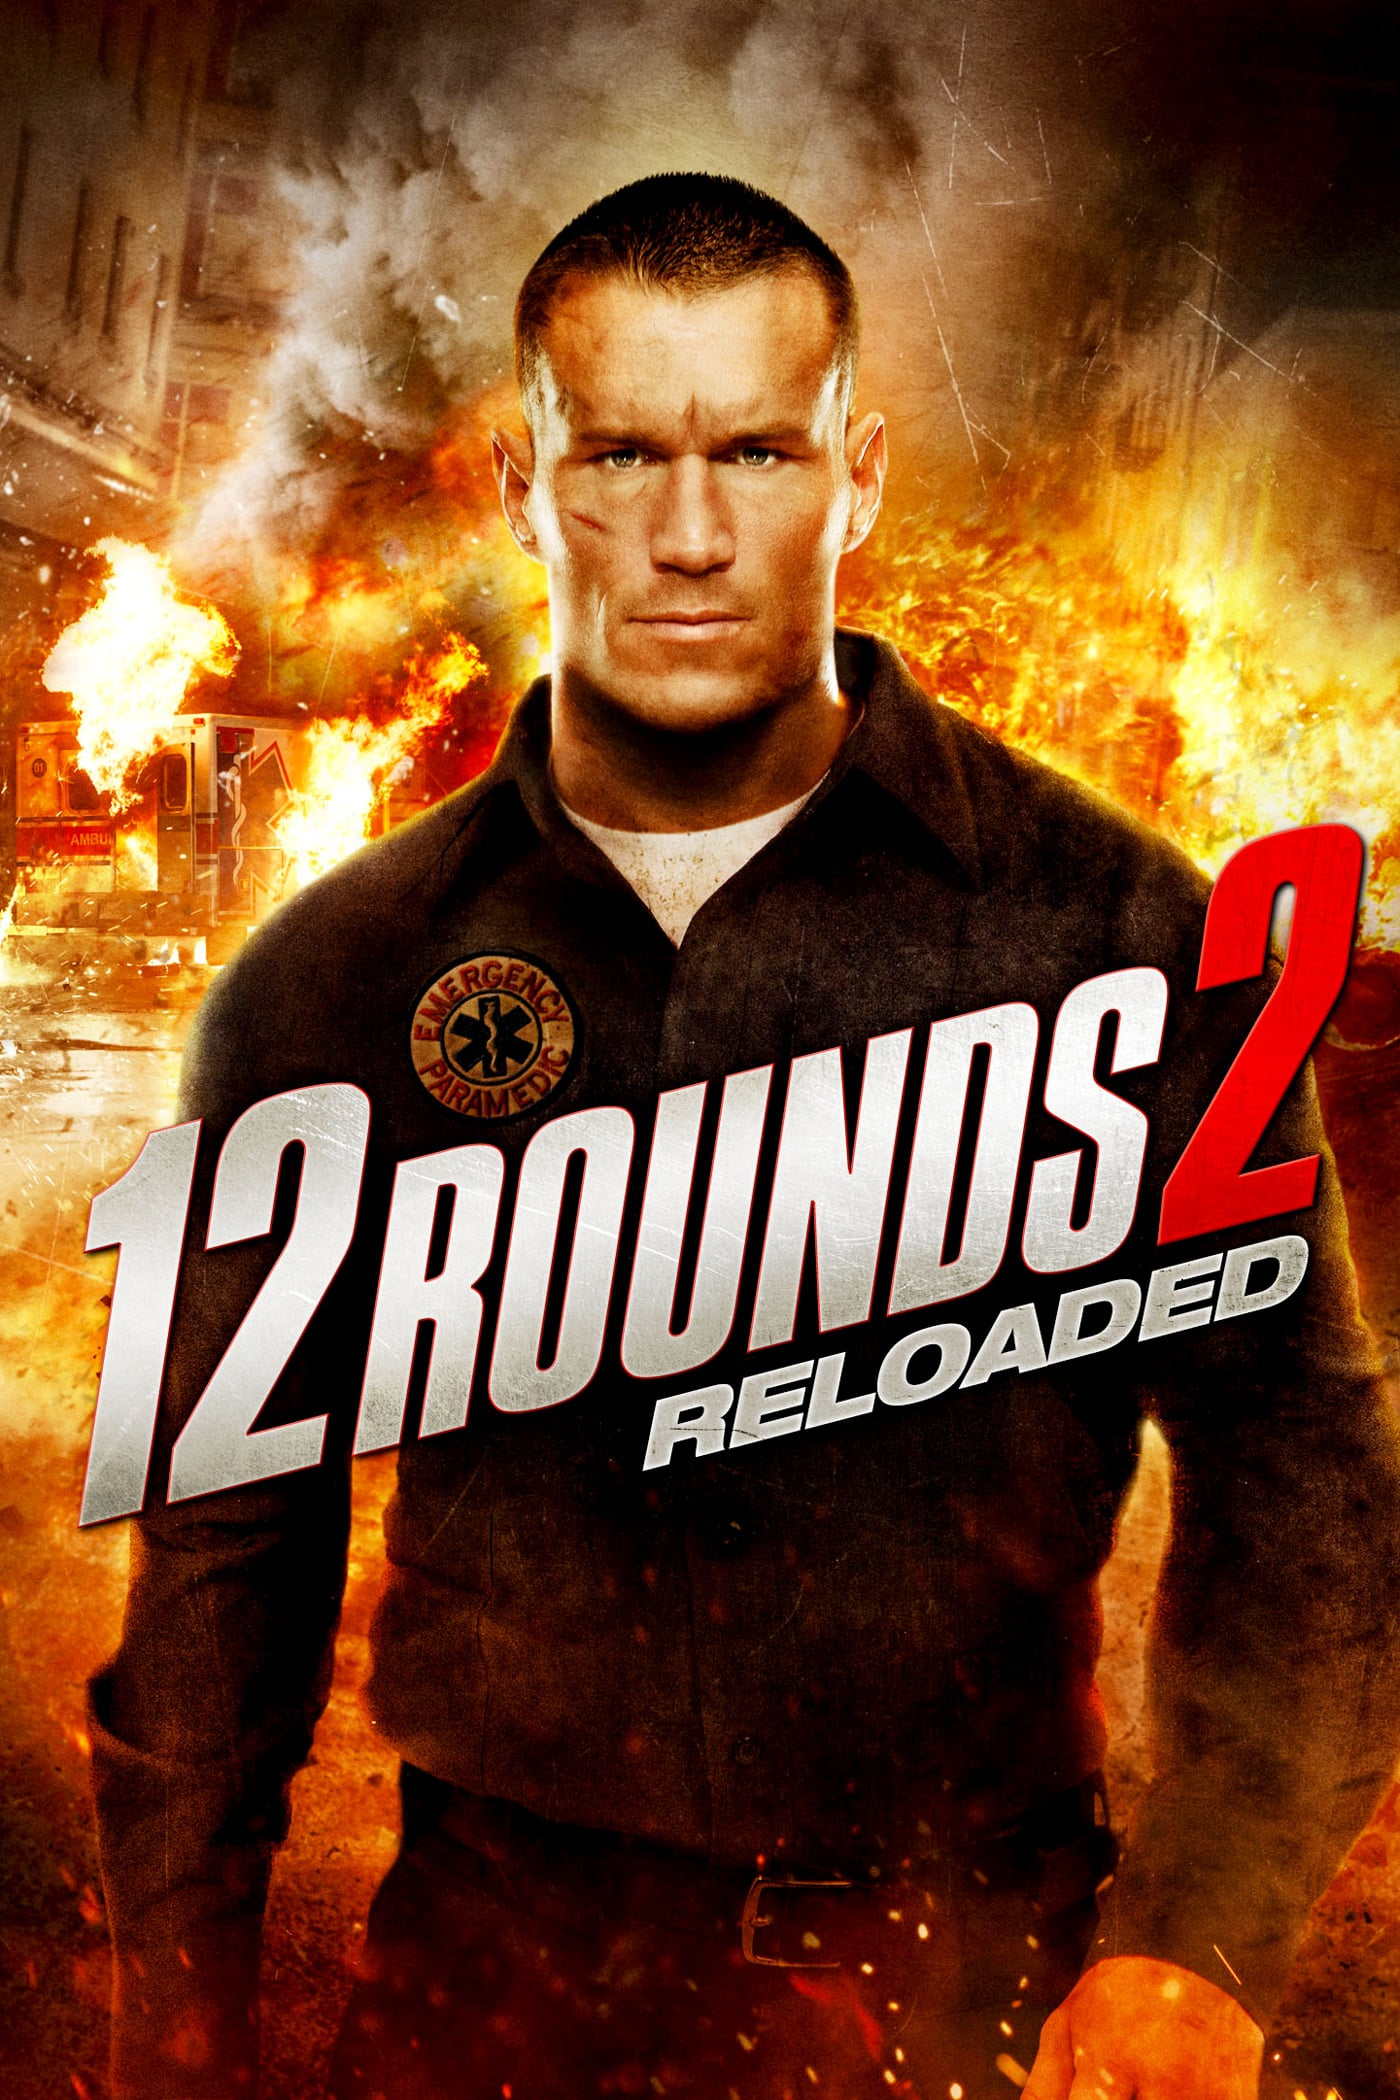 download or watch 12 Rounds 2 Reloaded full movie online free Openload